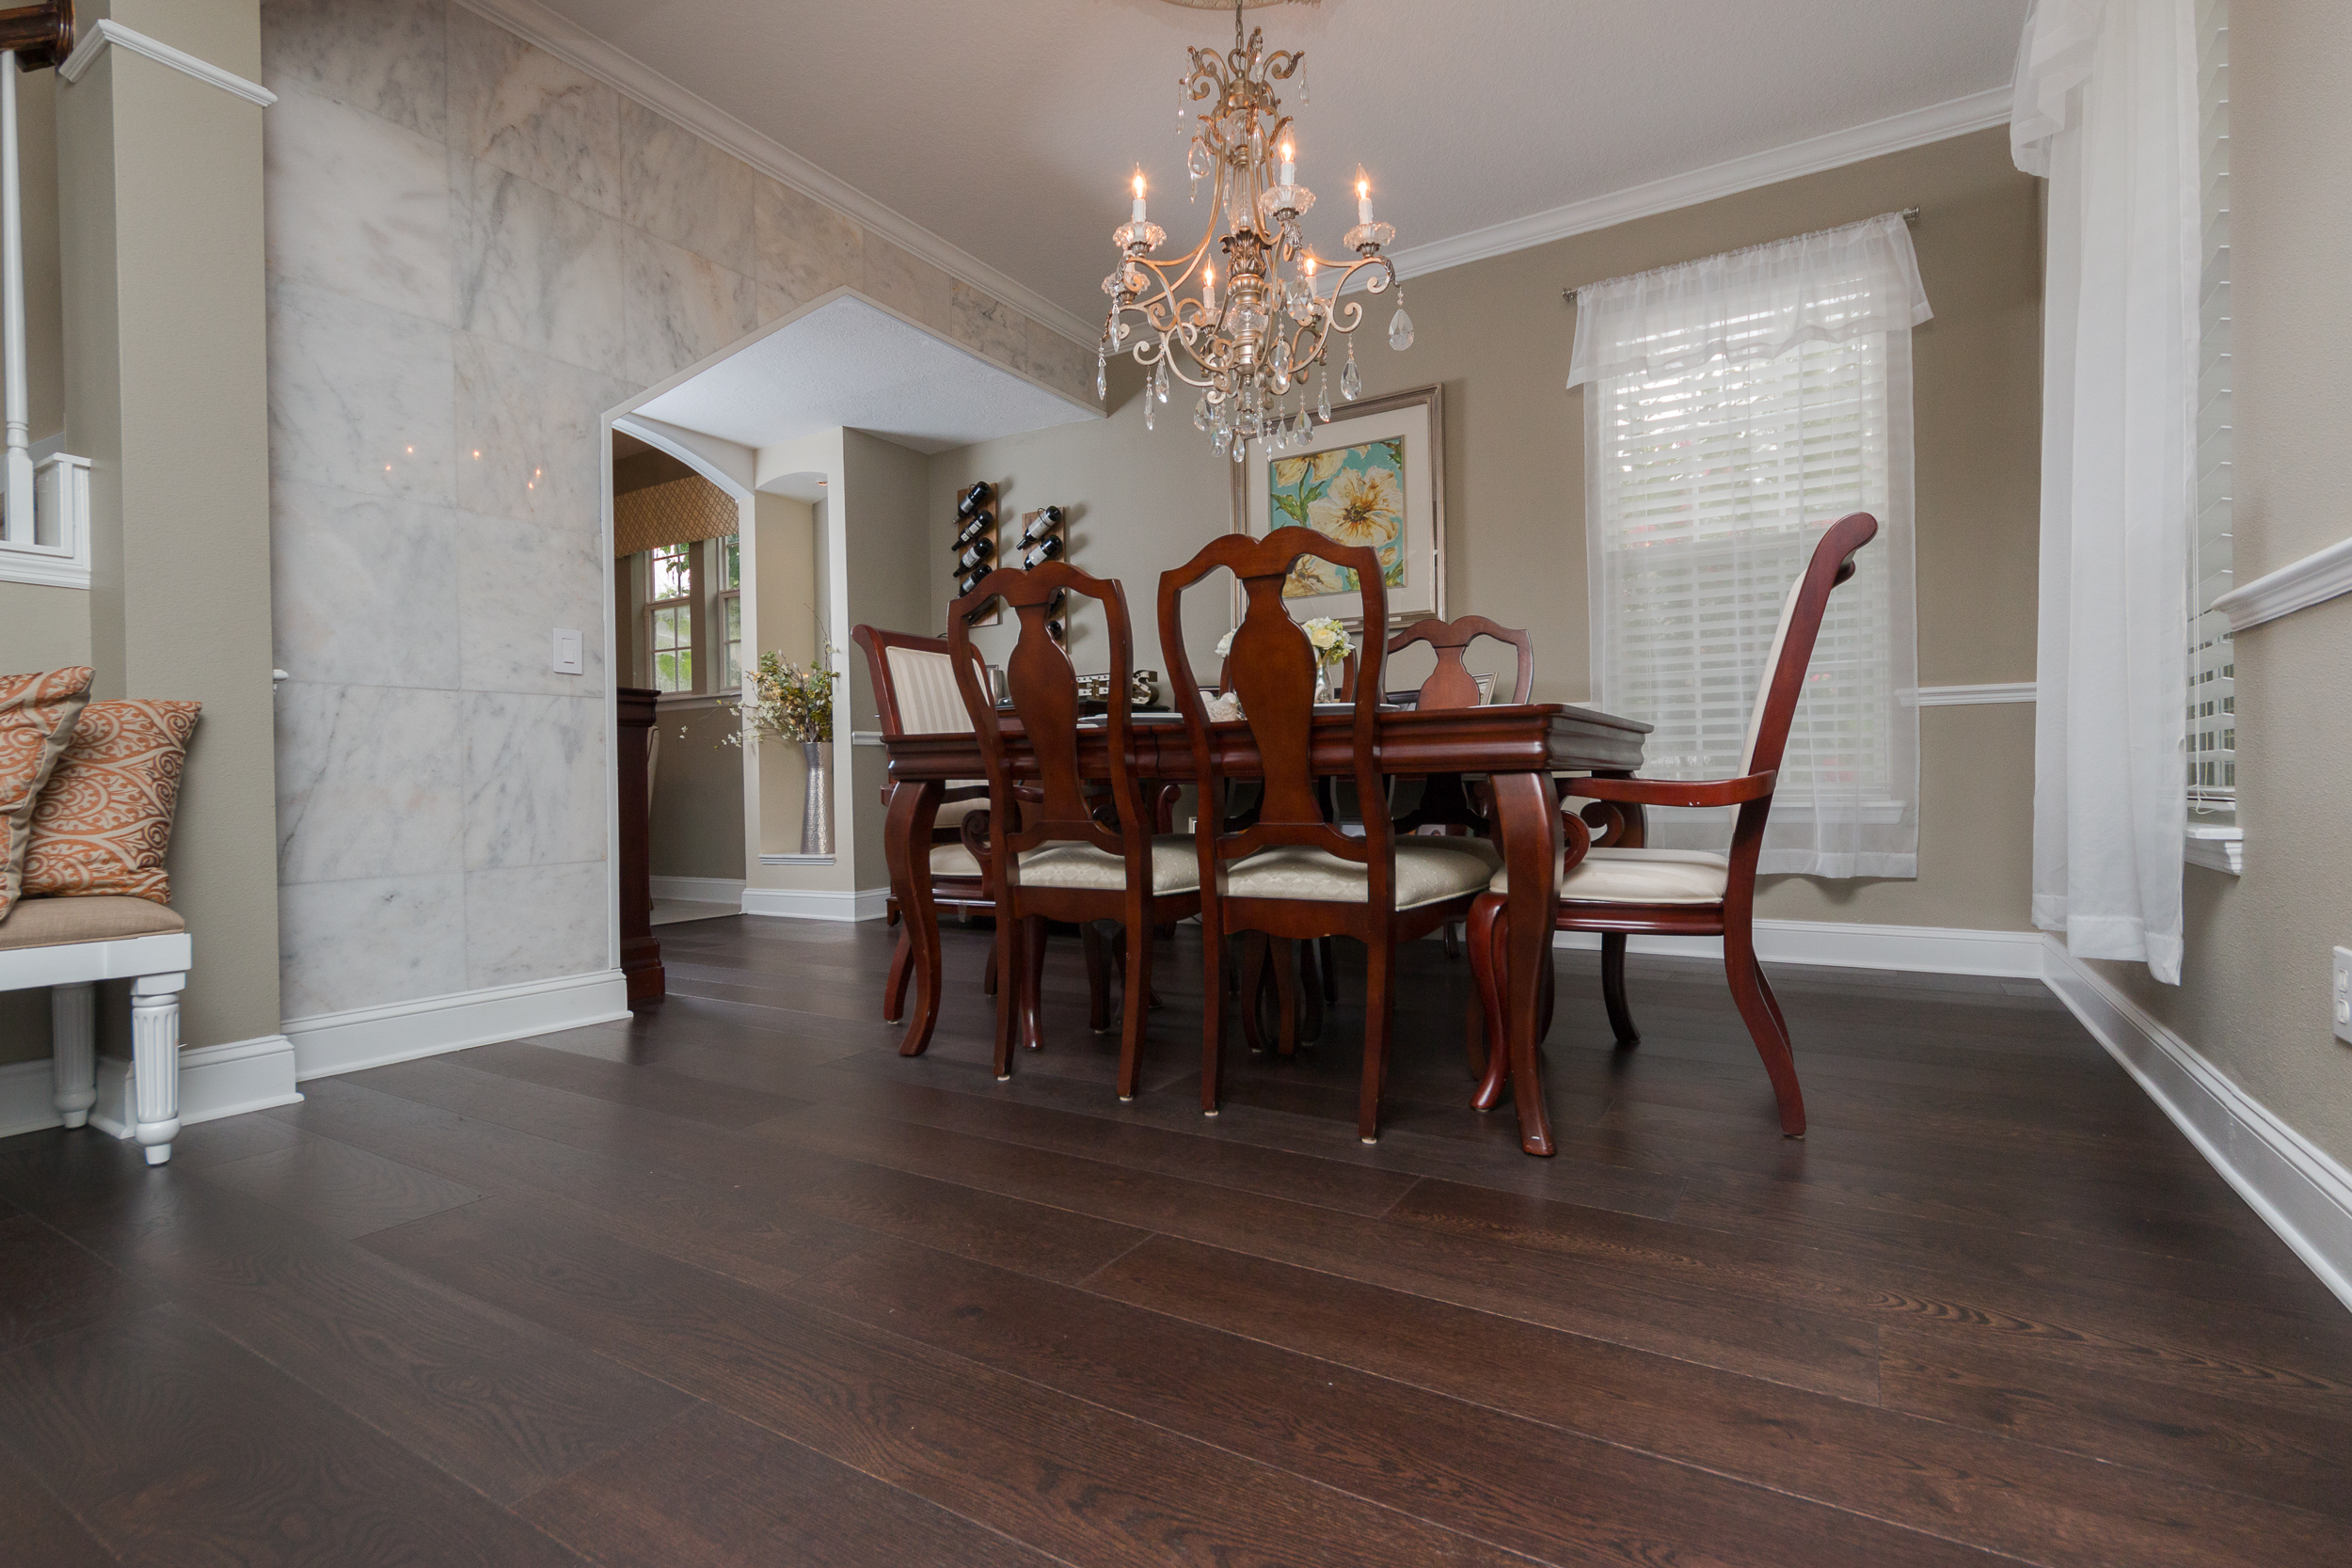 Mellow Oak Wood Flooring with Tile in Dining Room with marble walls